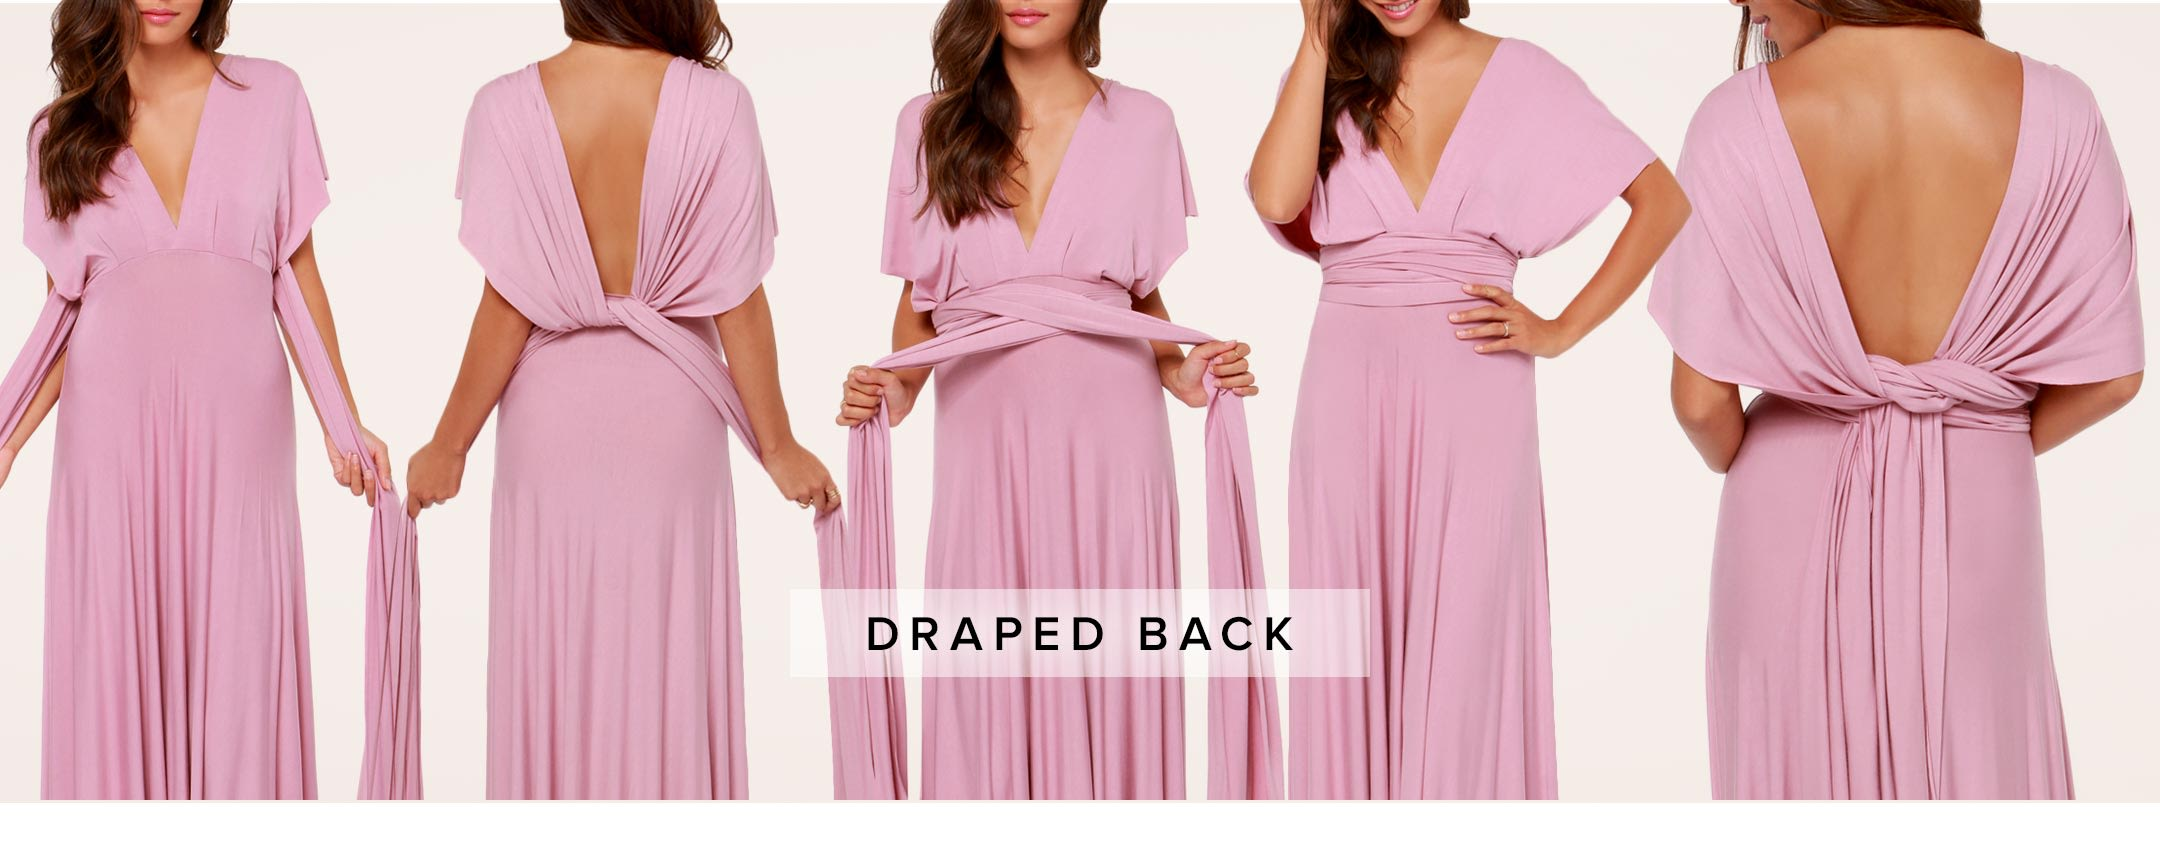 Tricks of the Trade: Wrap Dress Tutorial - Part II - Lulus ...